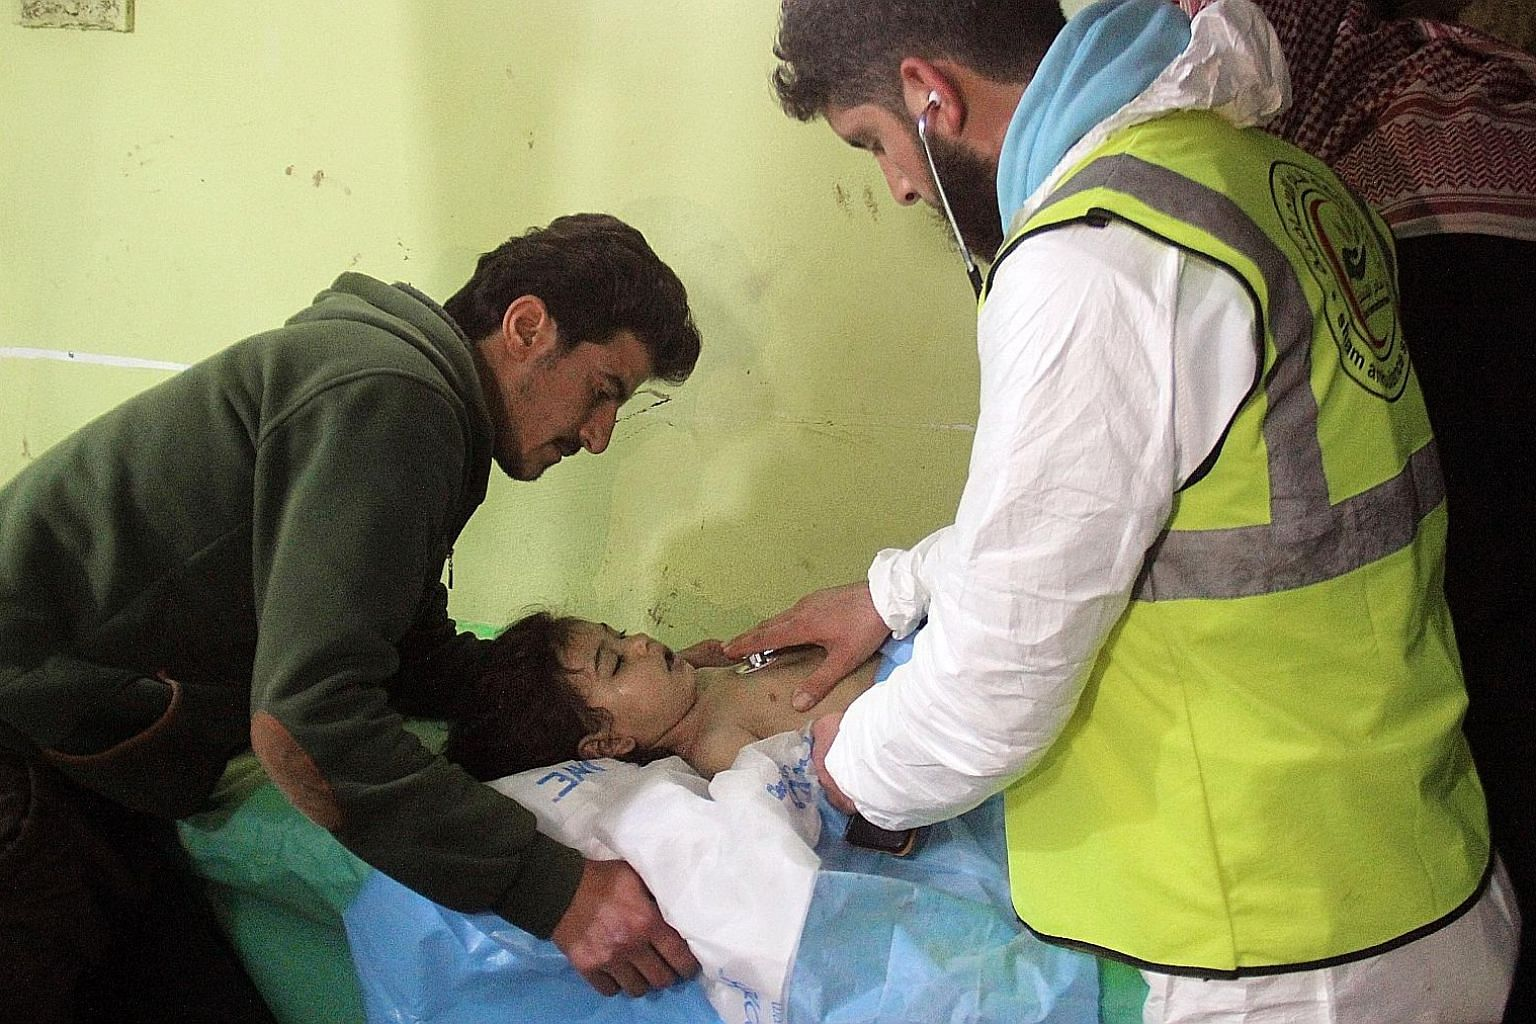 A file photo taken on April 4 showing an unconscious Syrian child receiving treatment at a hospital in Khan Sheikhun, following a suspected toxic gas attack.